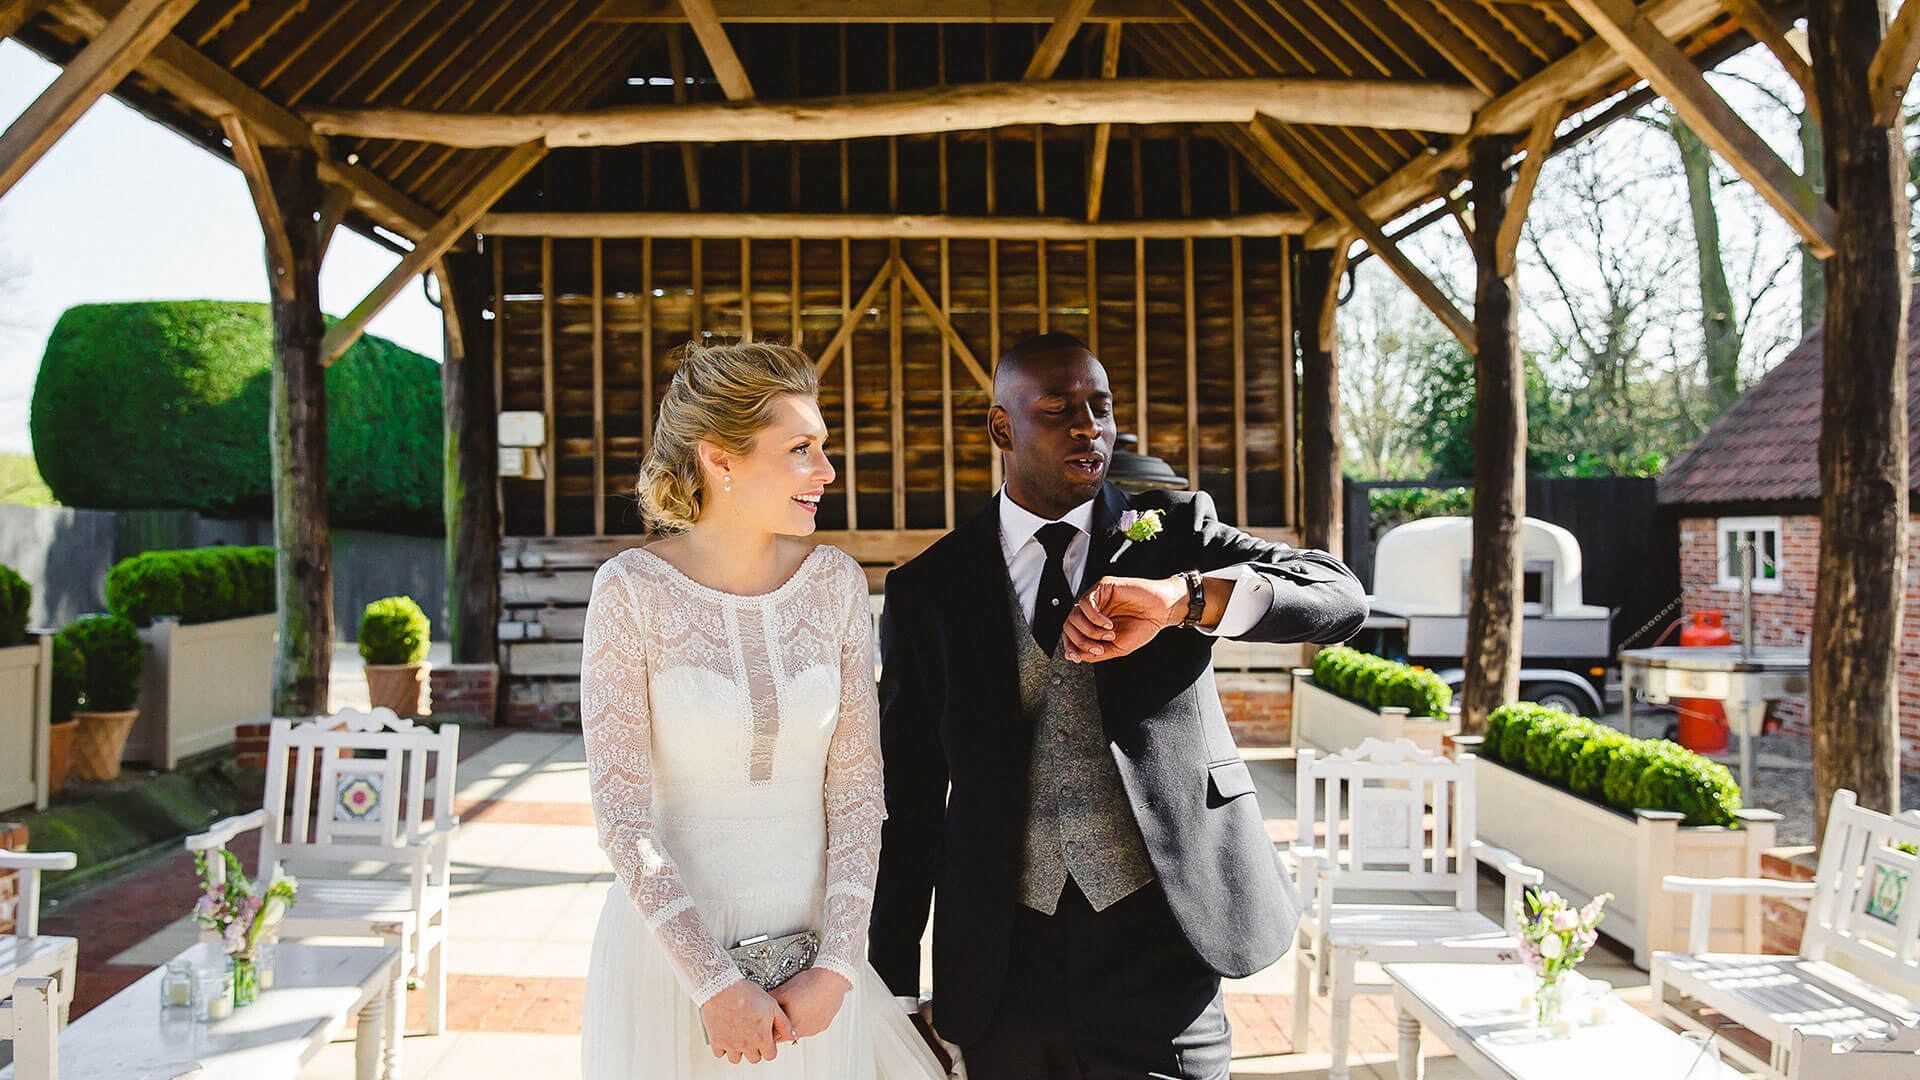 A groom stands with his bride in the Gather Barn licensed for wedding ceremonies - outdoor weddings